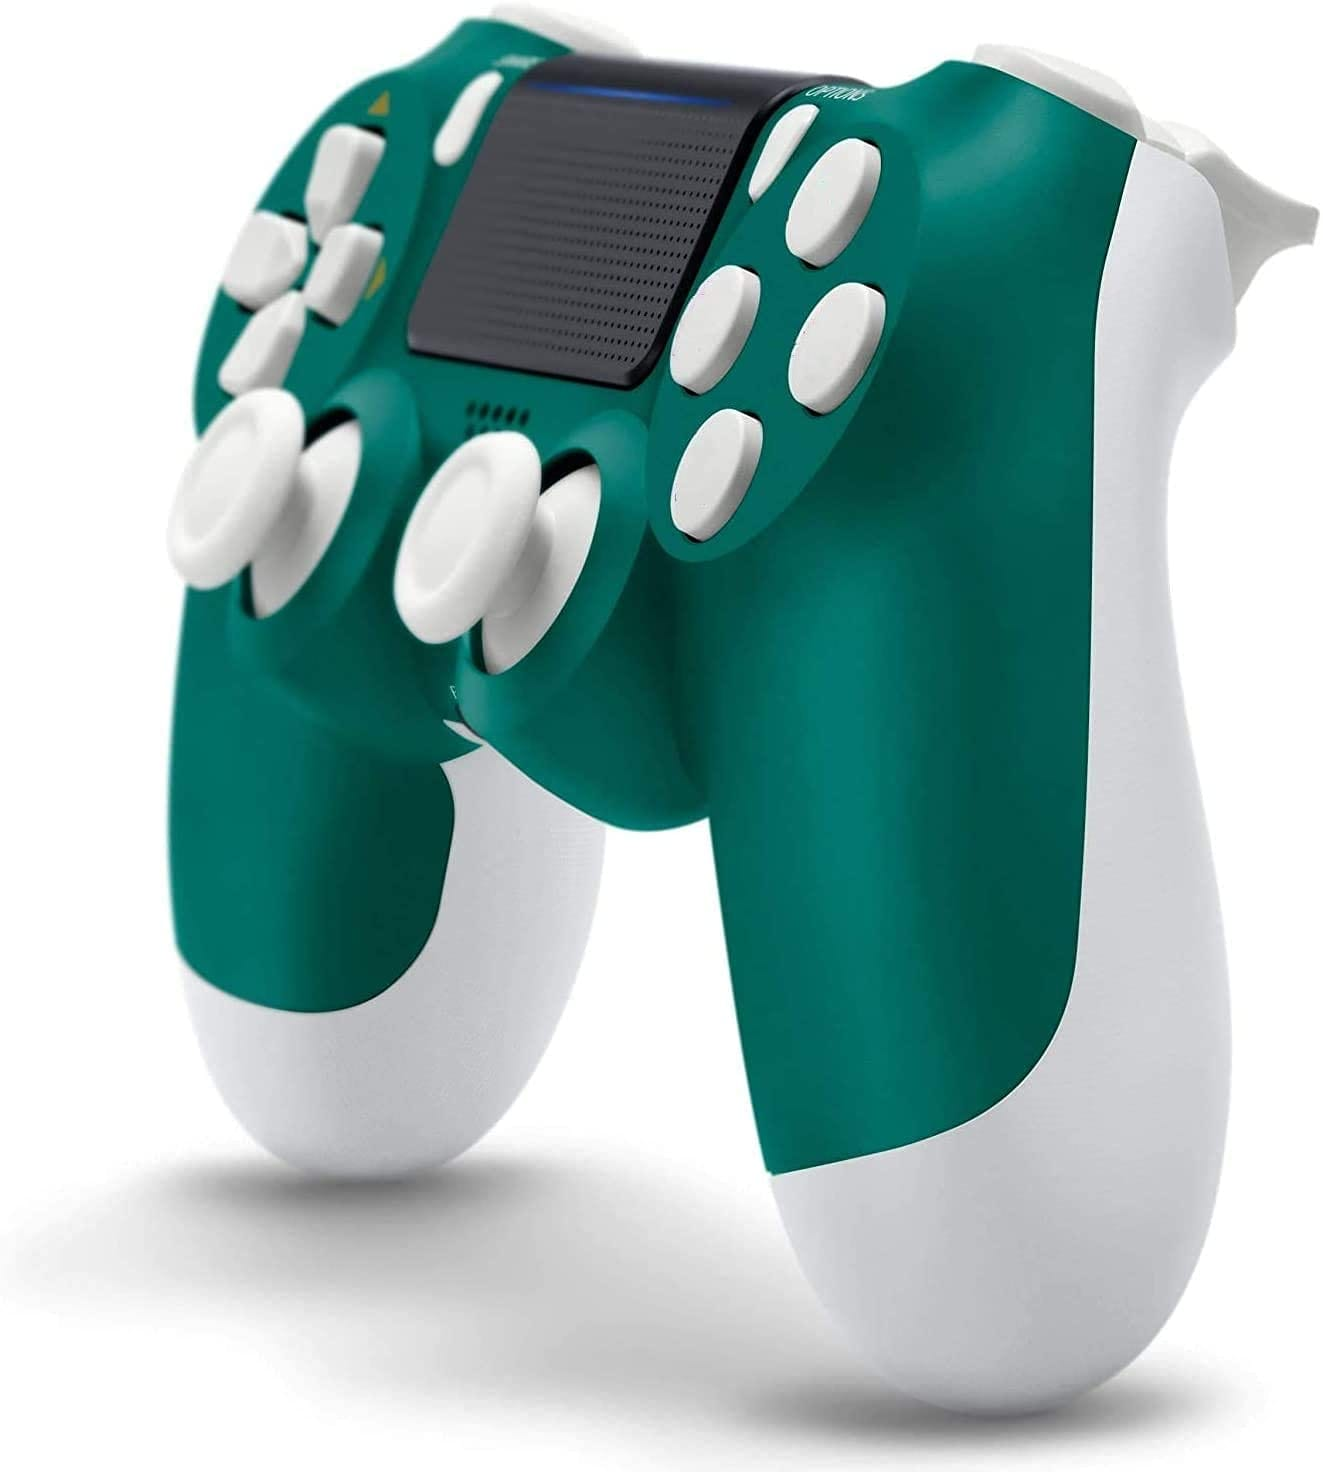 Newest PS4 Controller Dual Shock 4th Bluetooth Wireless Gamepad Joystick Remote Green White - 1